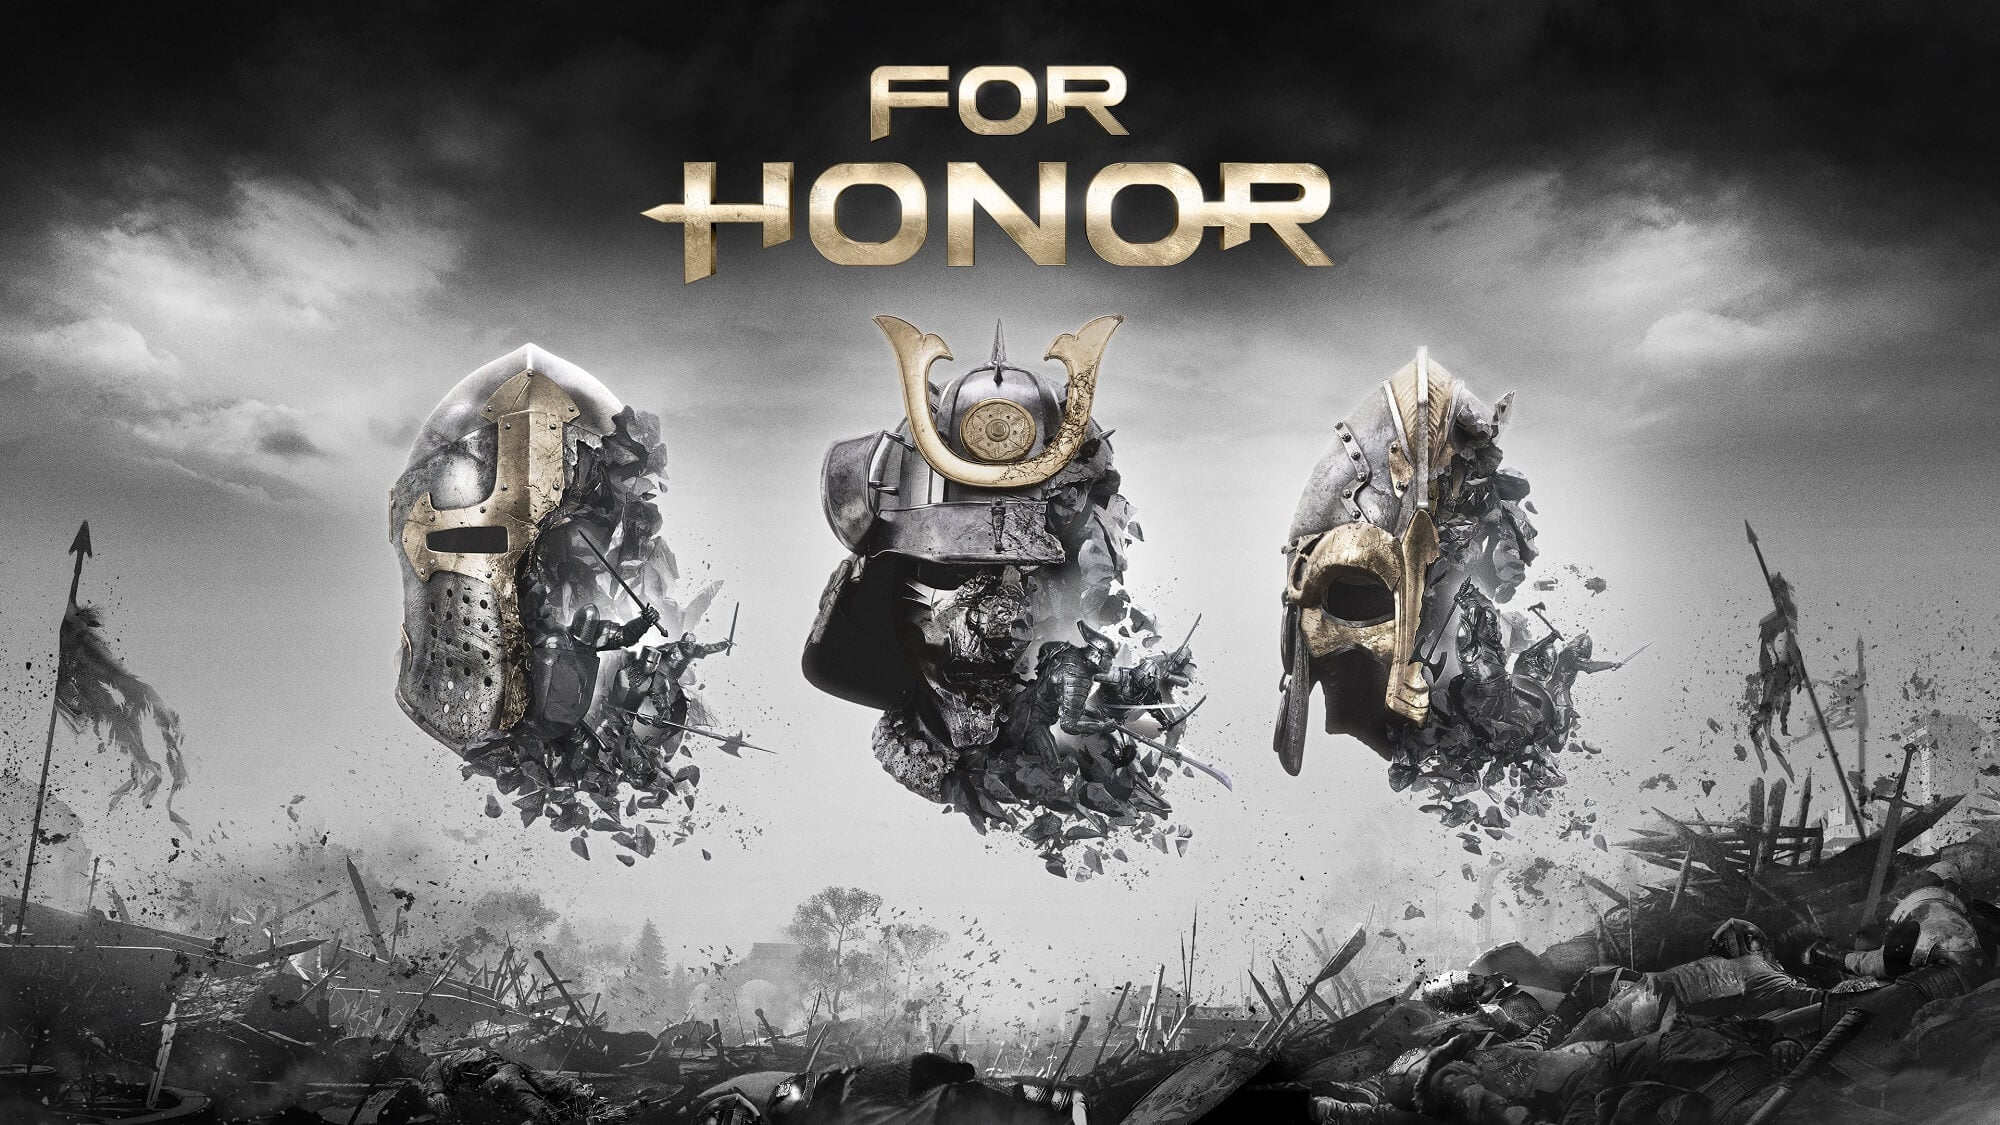 For Honor Getting a Free Weekend